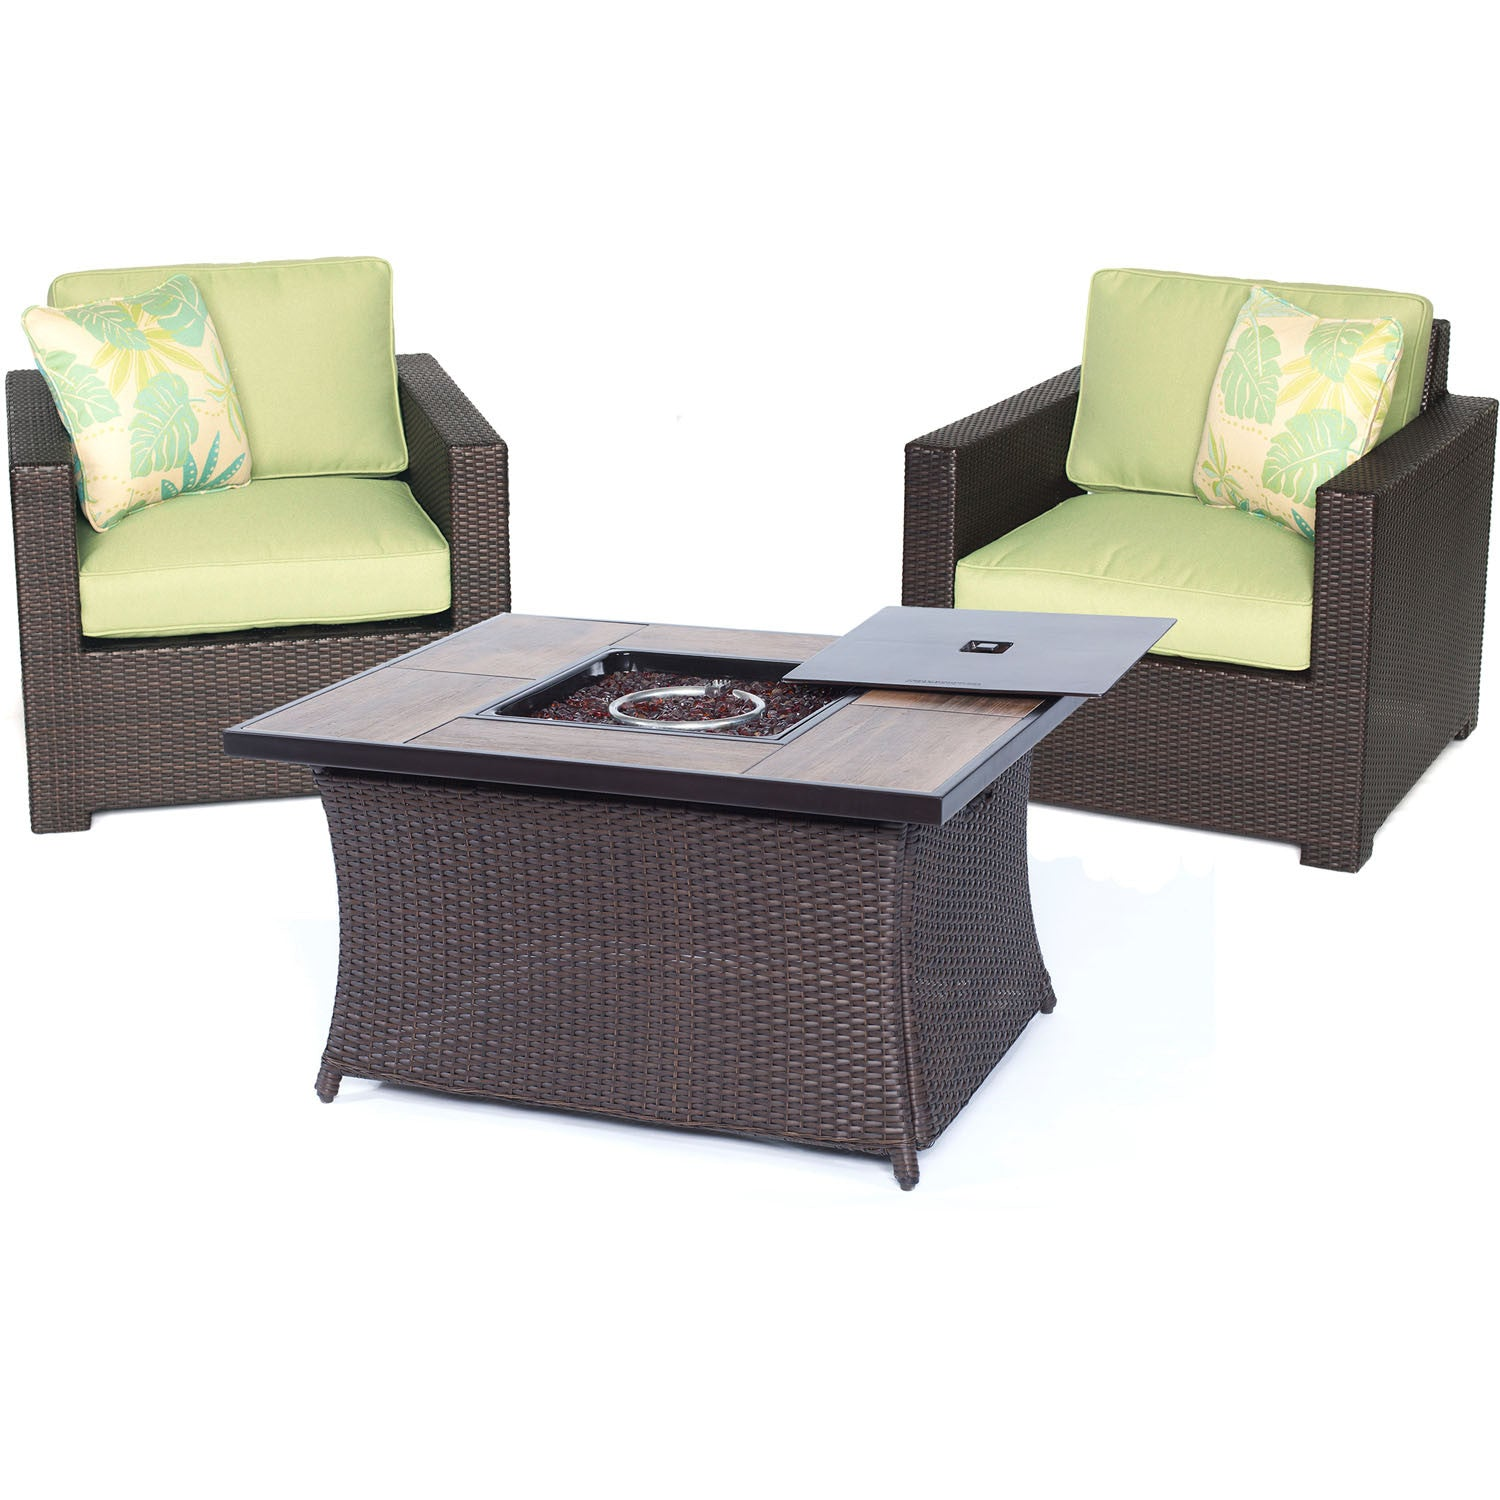 Metro3pc Fire Pit Set 2 Deep Seating Side Chairs Woven Fire Pit